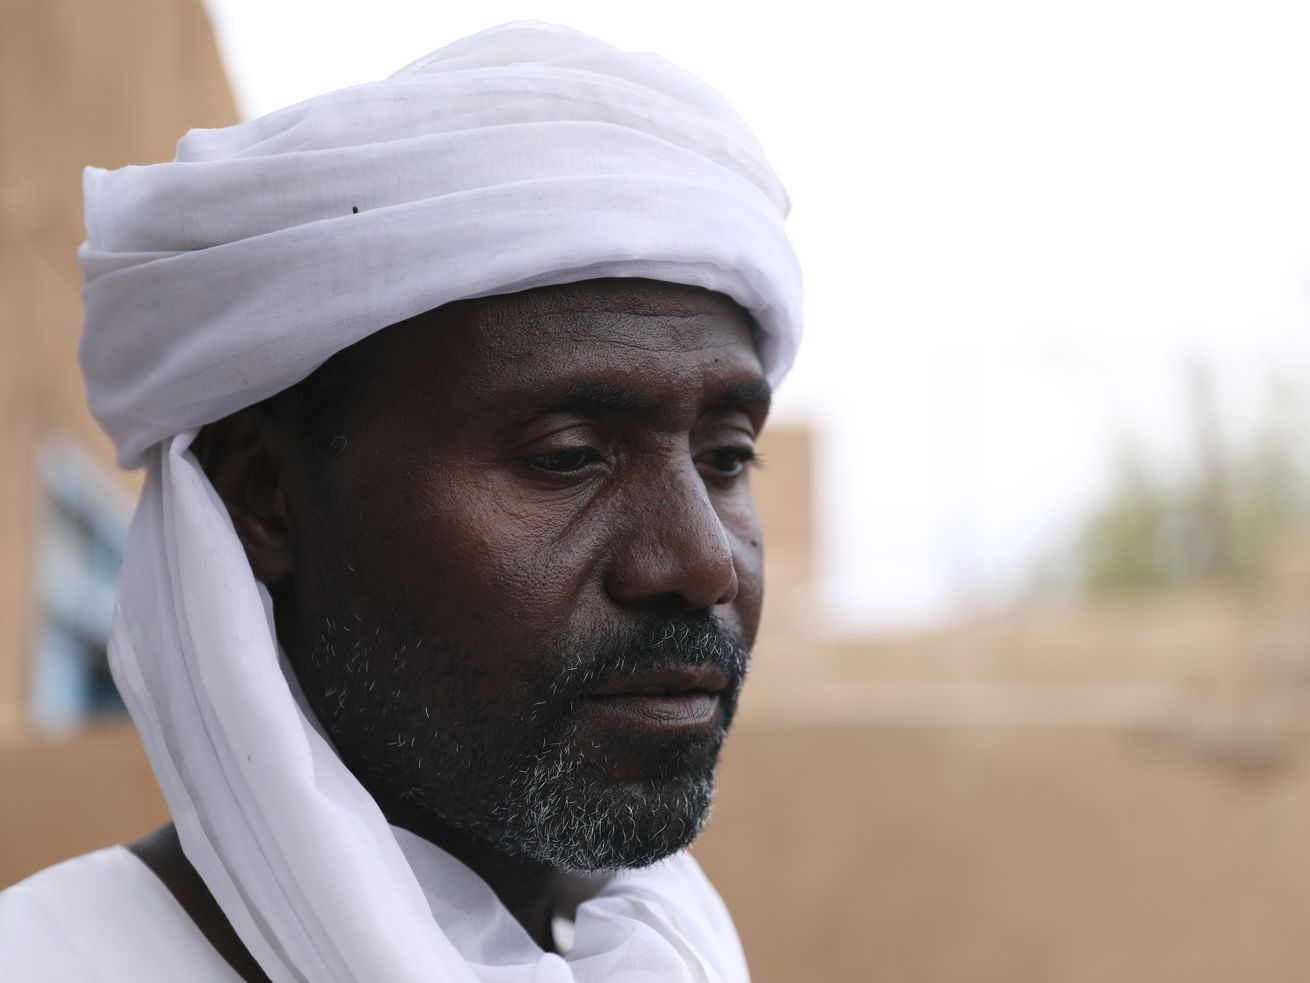 Abdullah Jaber, whose son Mubarak died in a migrant ship sinking last month, sits at his home in Khartoum, Sudan, Friday, April 30 2021.